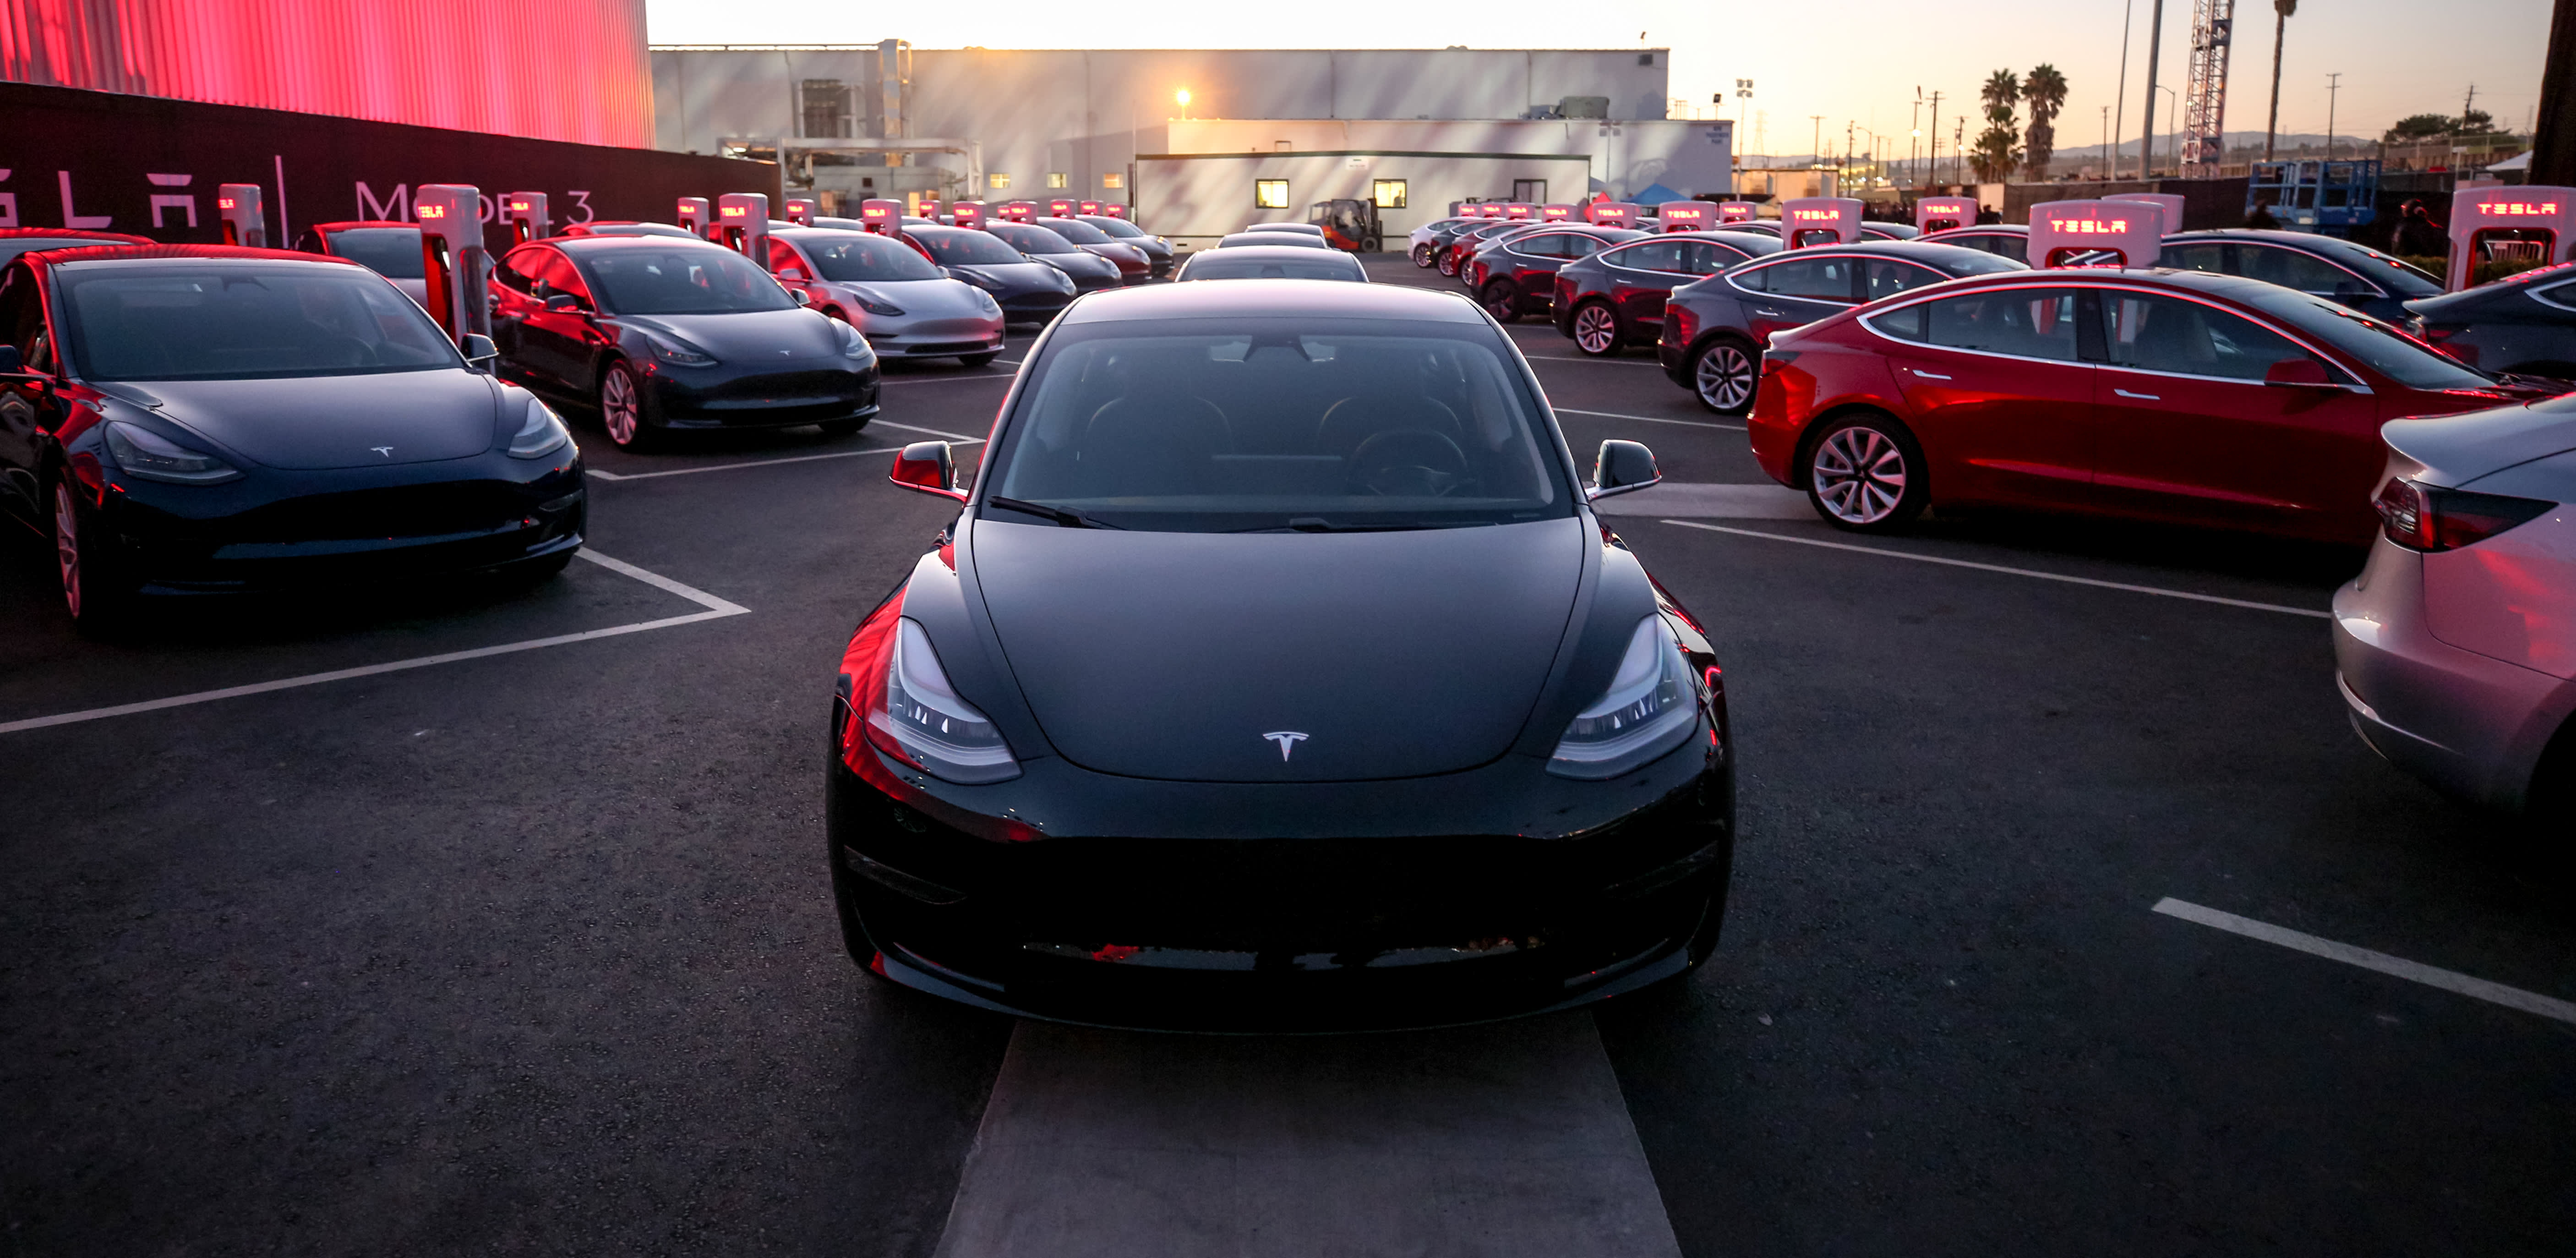 Tesla shares rise as first-quarter earnings beat